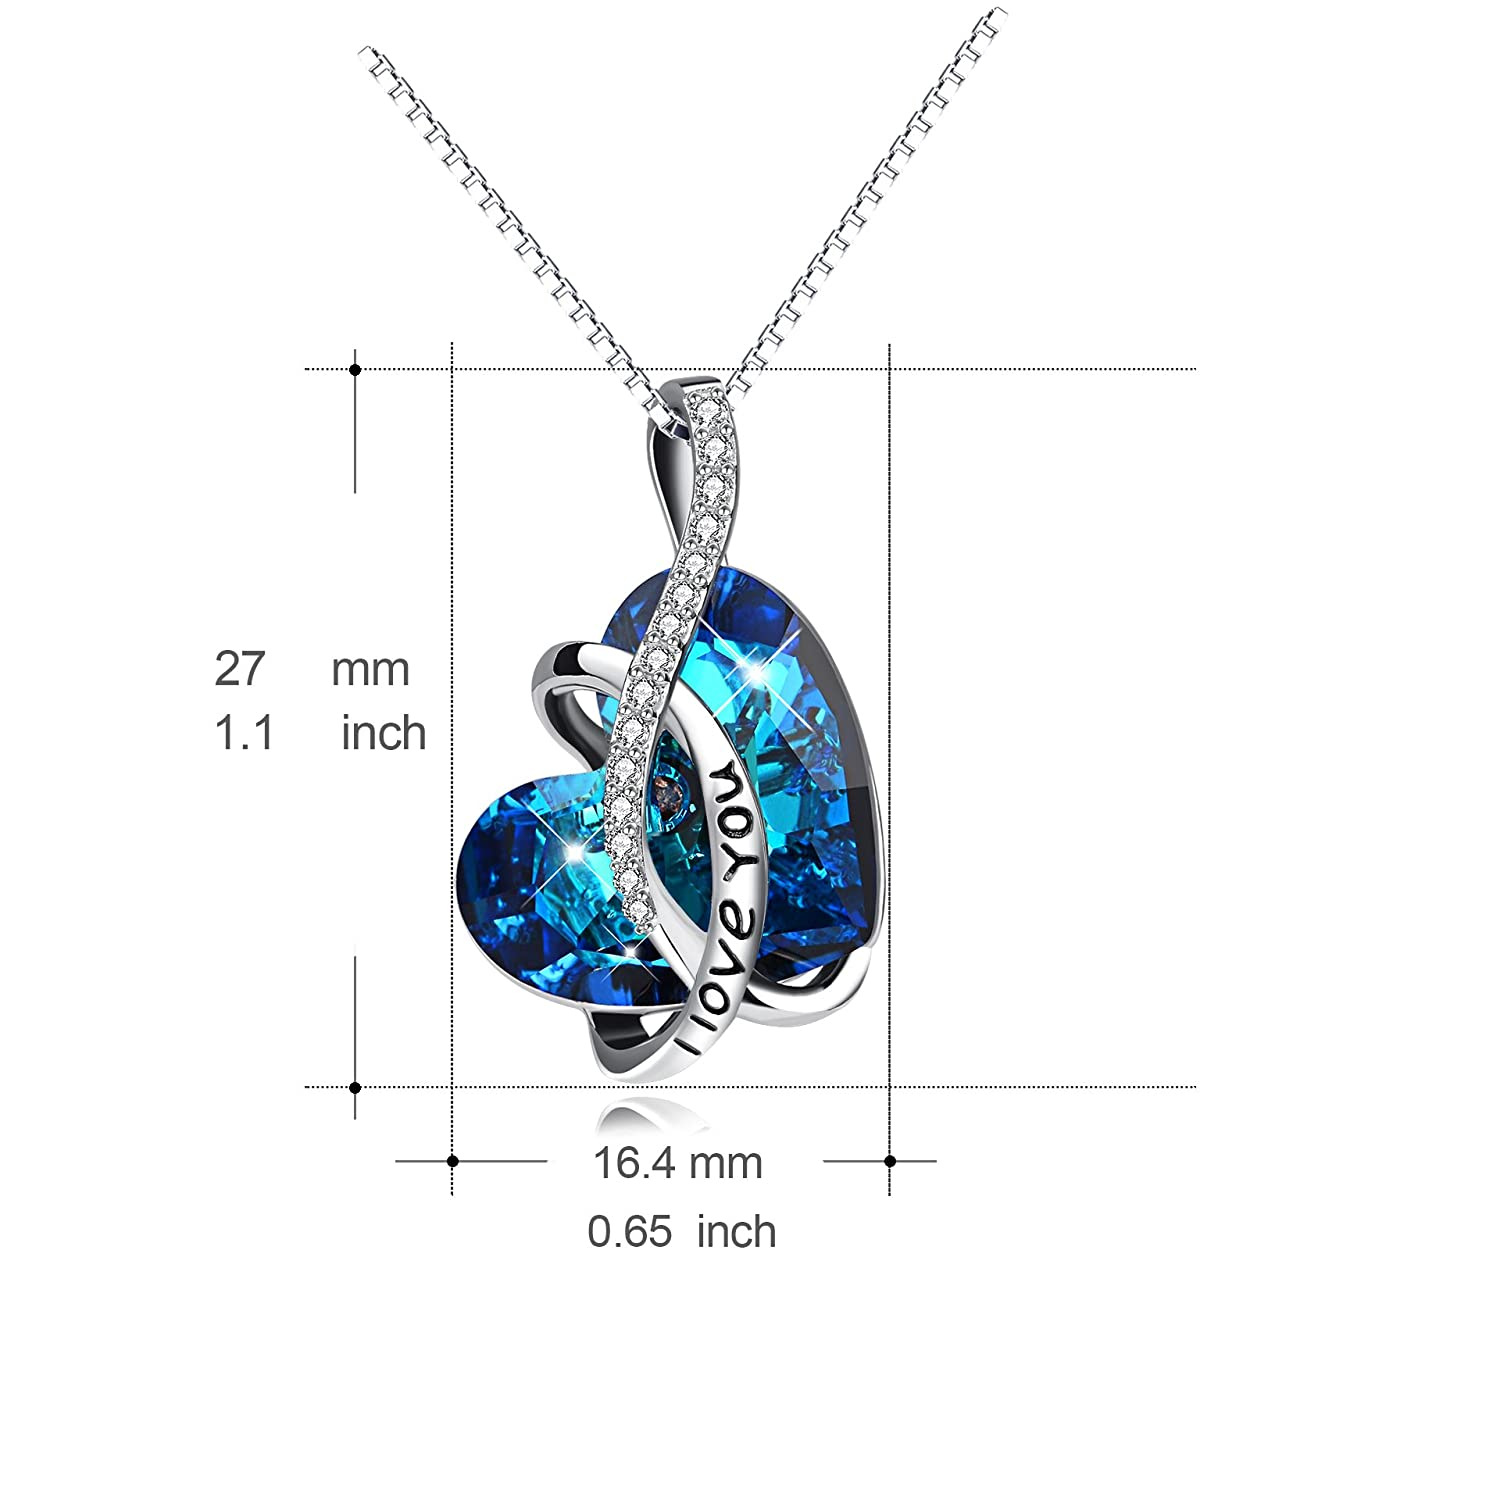 d6db3a521 Amazon.com: AOBOCO Jewelry I Love You Sterling Silver Heart Pendant  Necklace for Girls with Blue Crystals from Swarovski Anniversary Birthday  Gift for Women ...